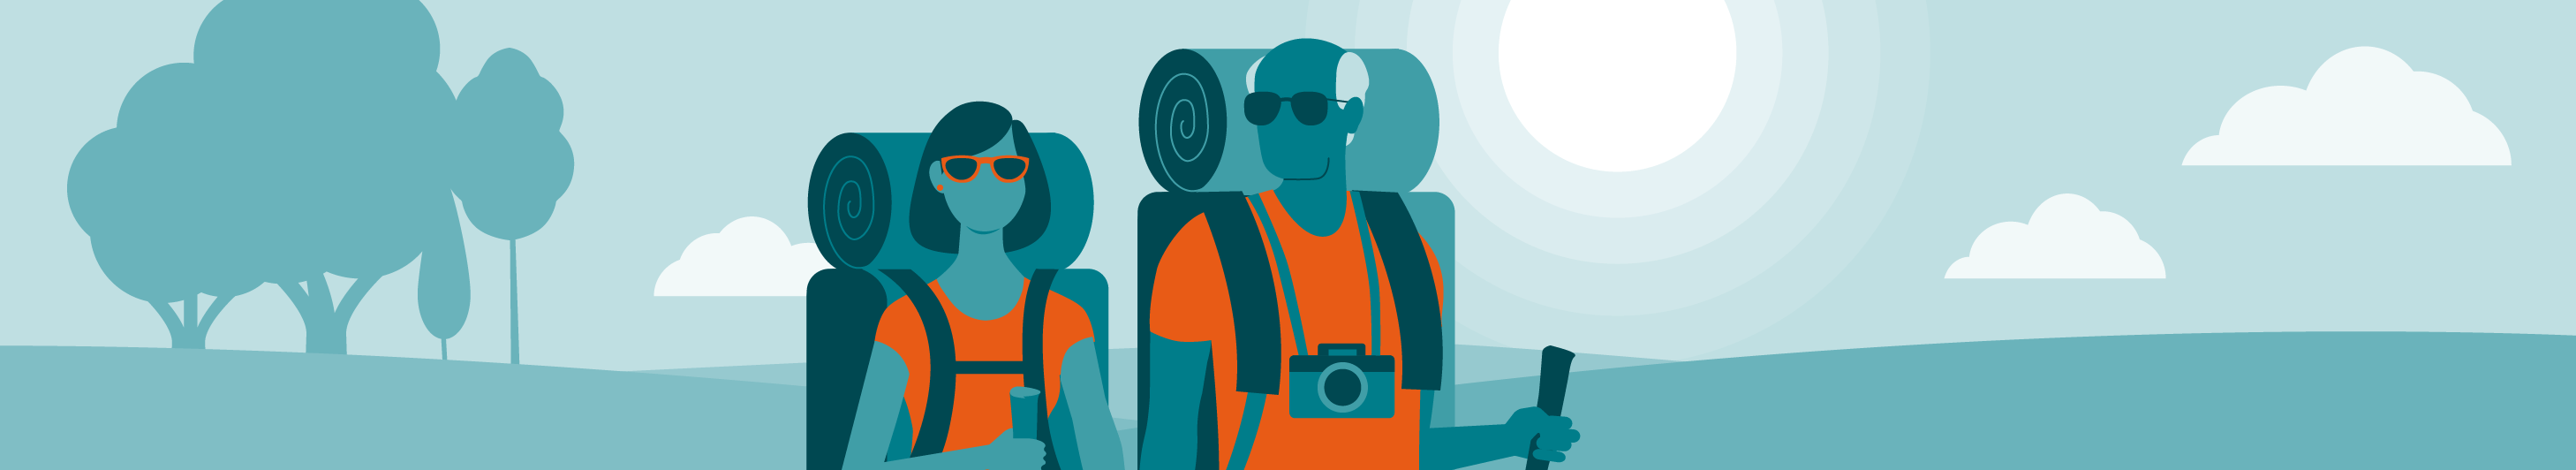 illustration of a man and woman with hiking gear and backpacks